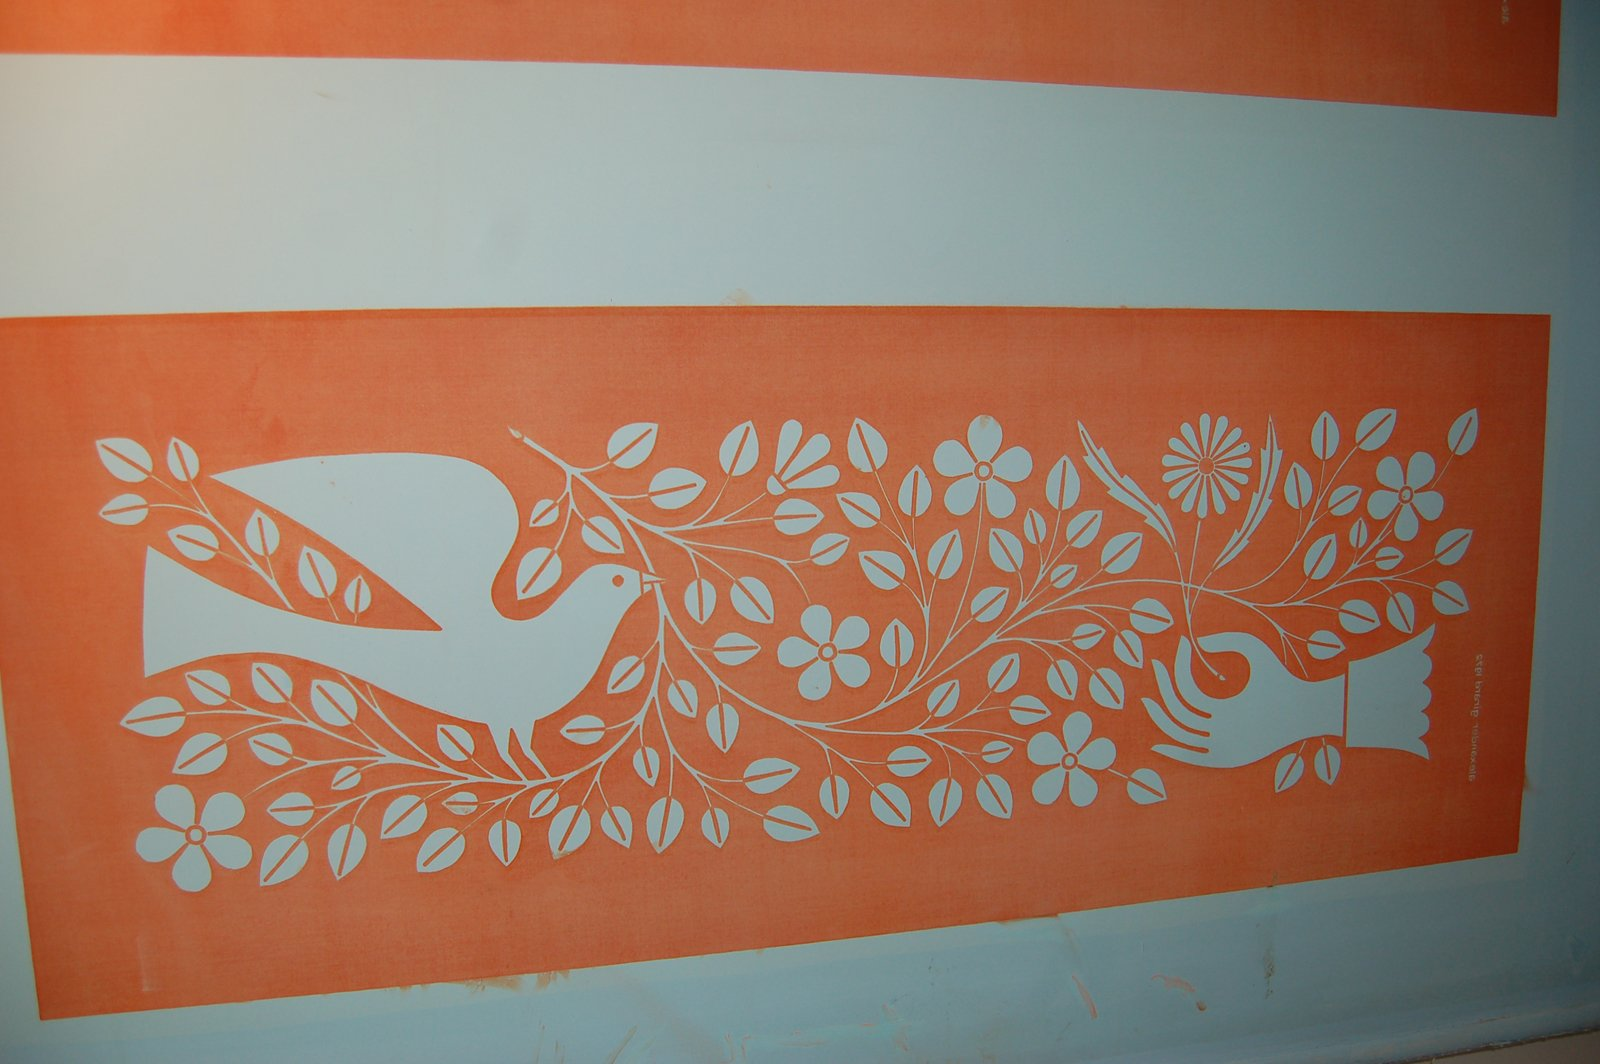 """We happened upon this original screen of a design by Alexander Girard, called """"Hand & Dove"""", which was created for Herman Miller in 1971. It was used as a part of the company's """"environmental enrichment panels""""—i.e. graphical fabric embellishments that fit into their Action Office system.  Inside the Herman Miller Headquarters by Amanda Dameron"""